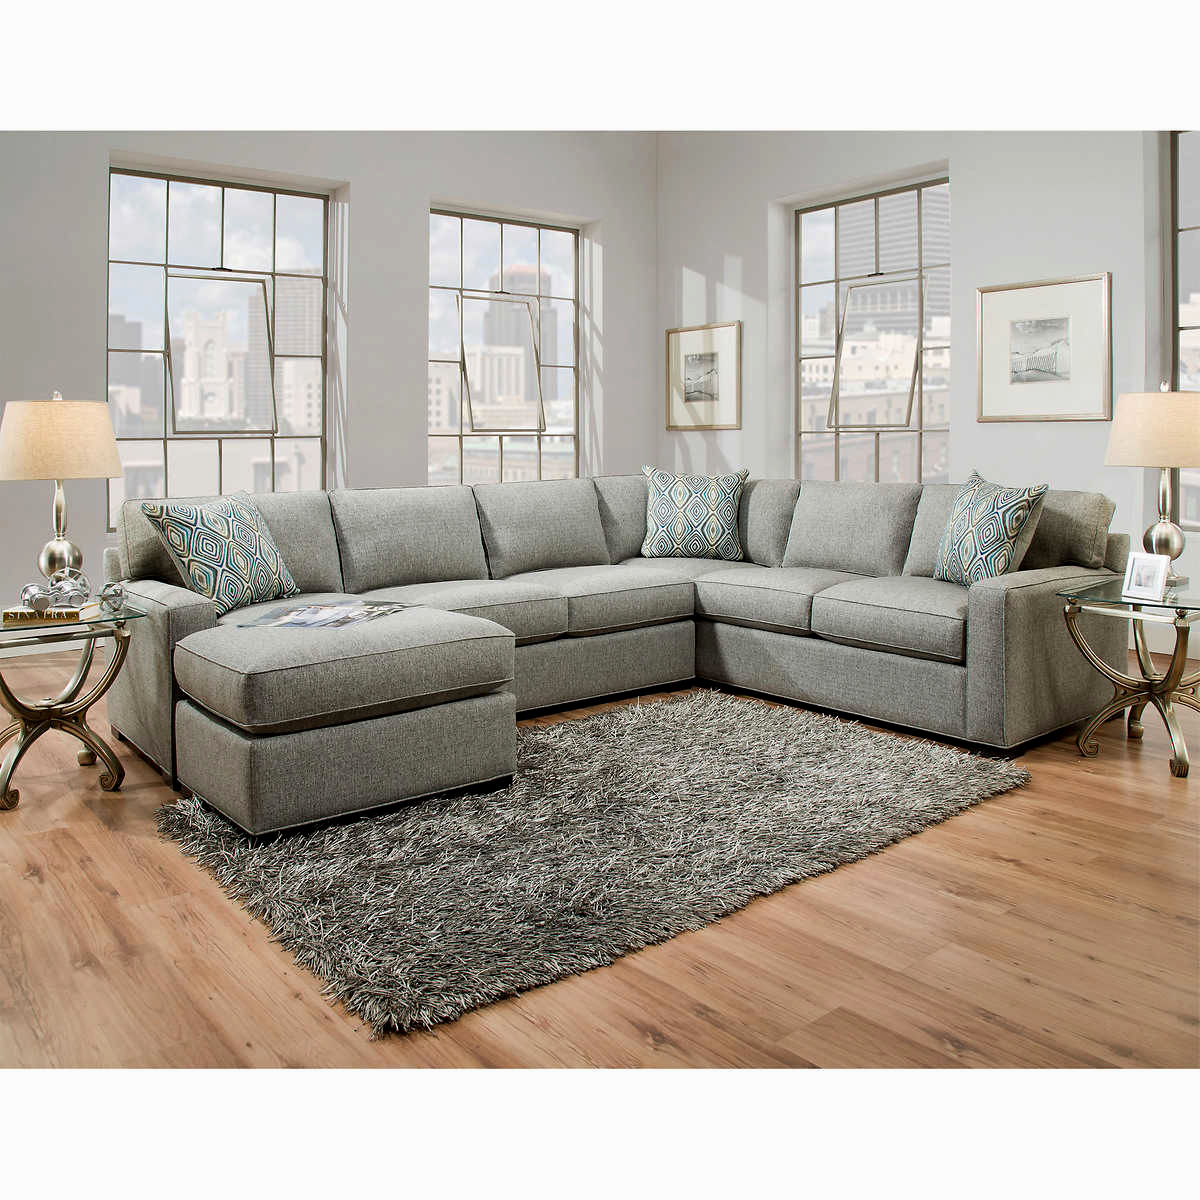 unique costco furniture sofas picture-Best Of Costco Furniture sofas Wallpaper